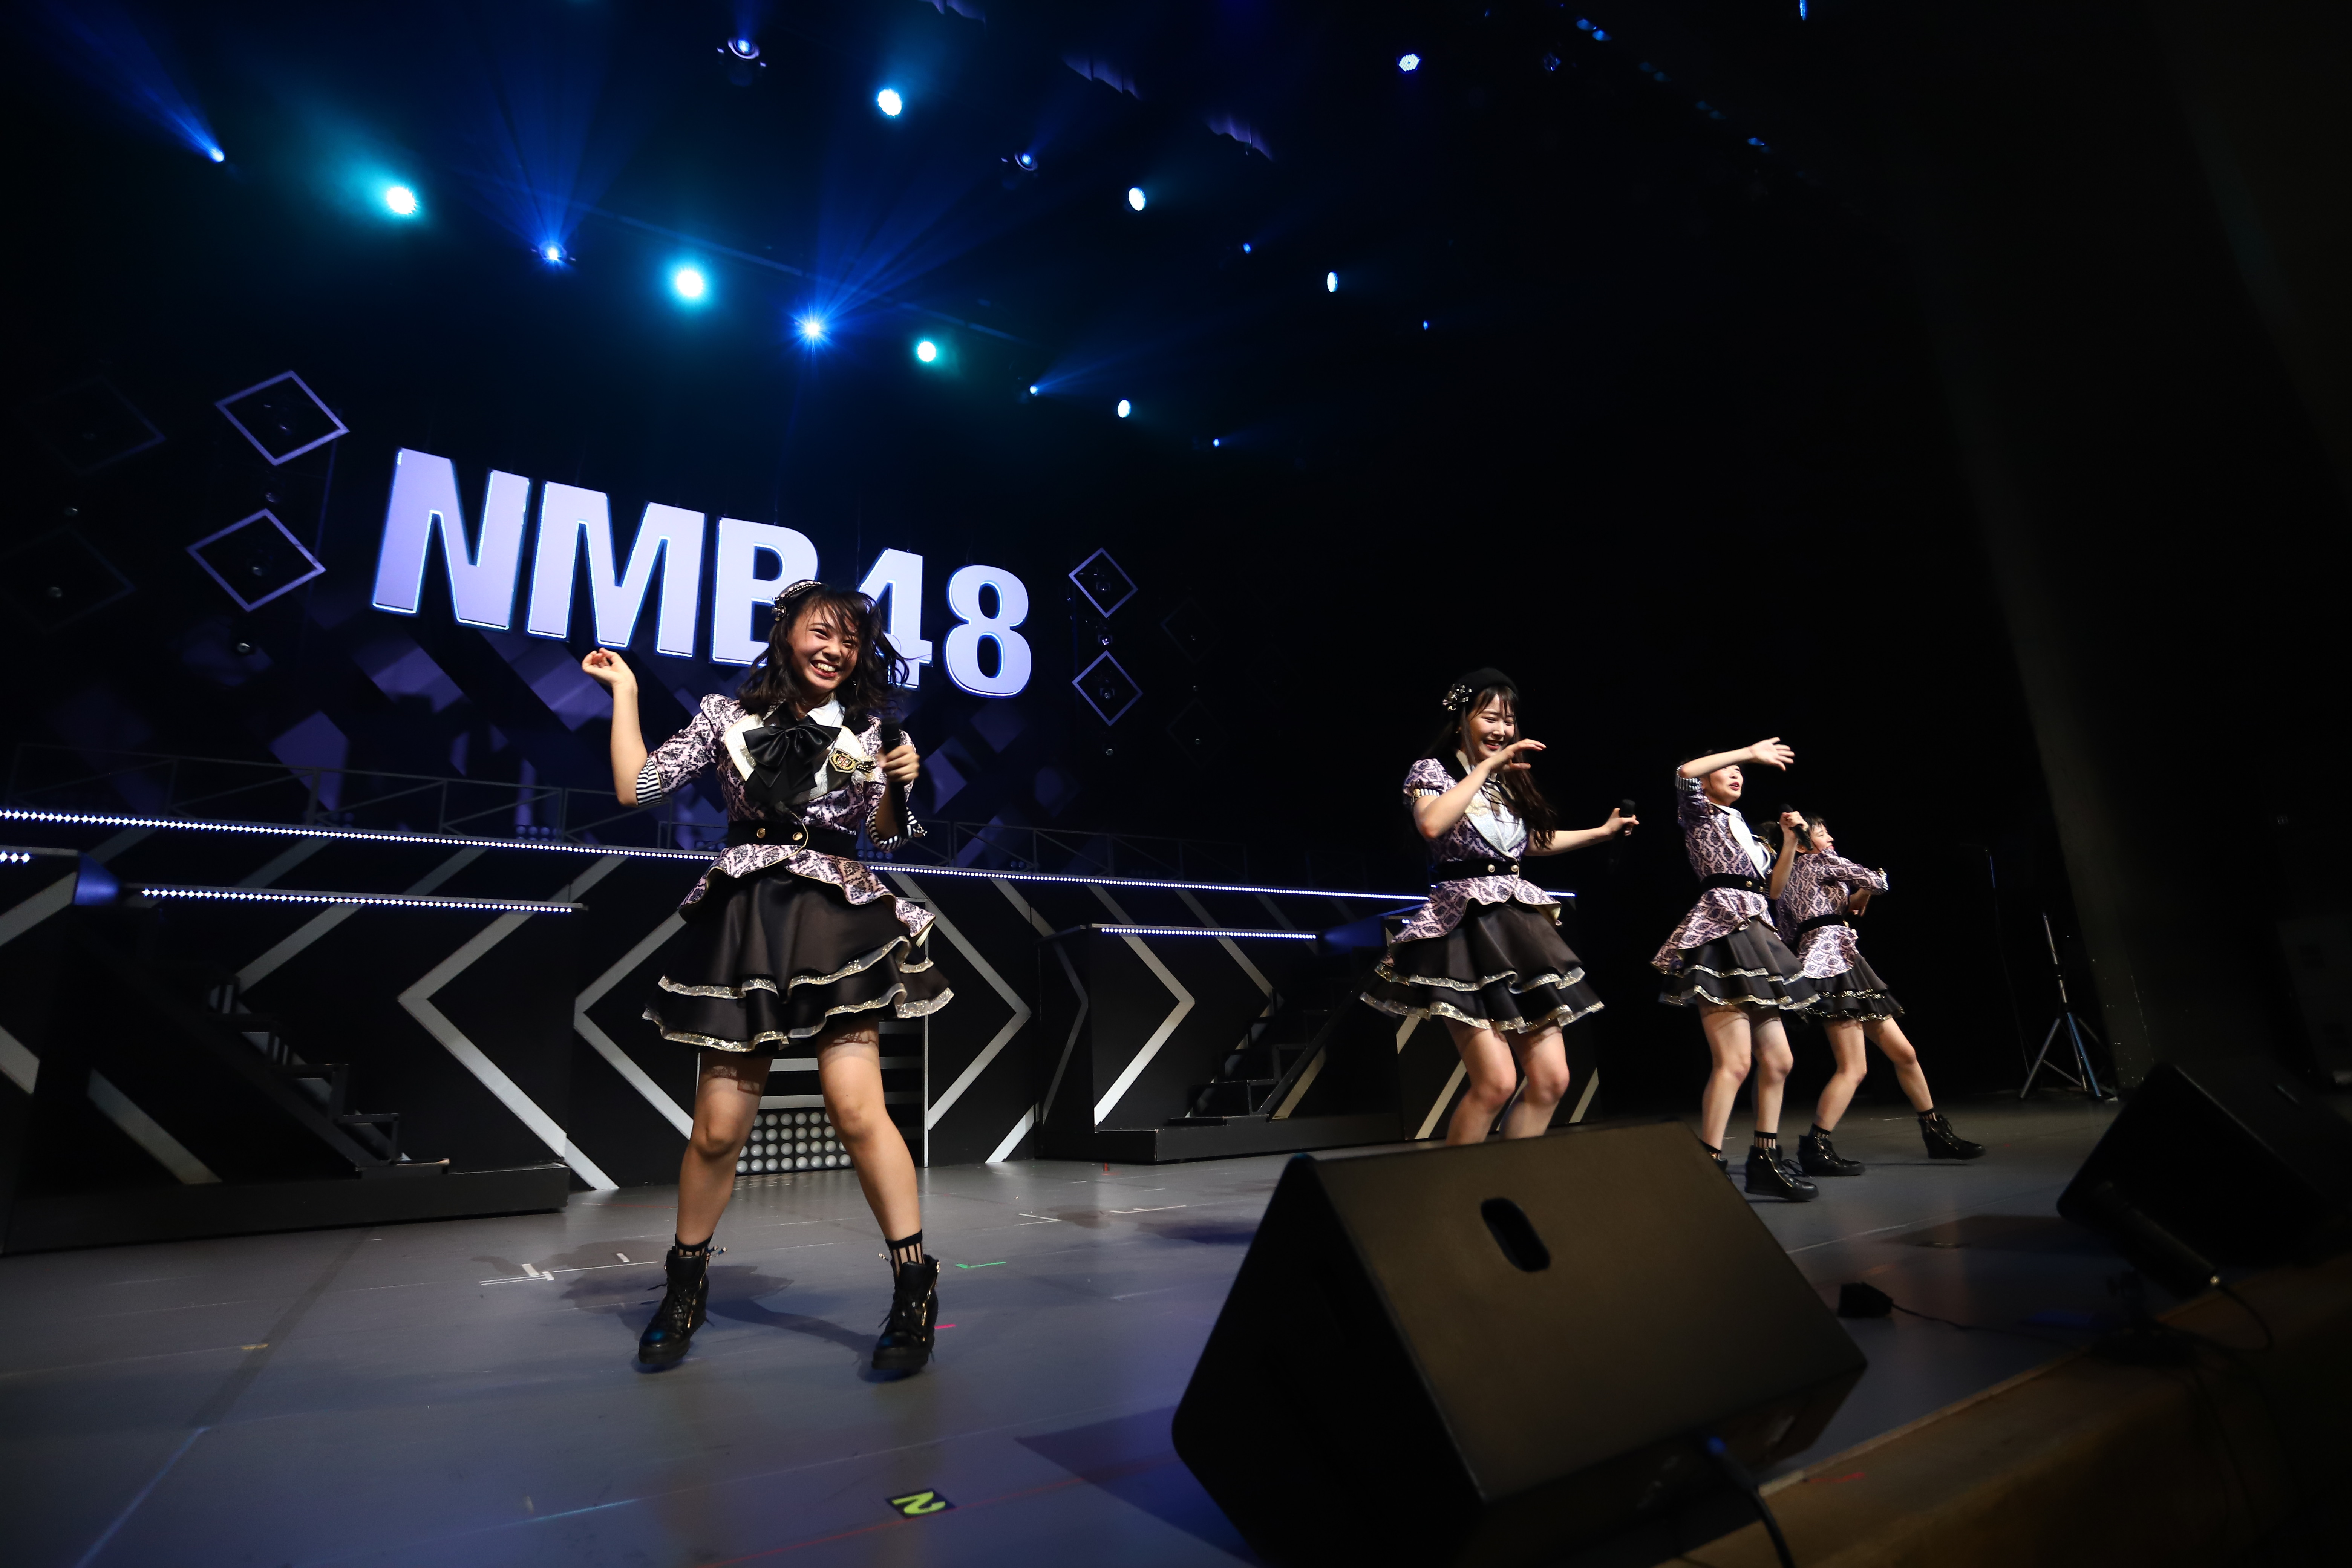 NMB48 LIVE TOUR 2018 名古屋 チームM公演-171